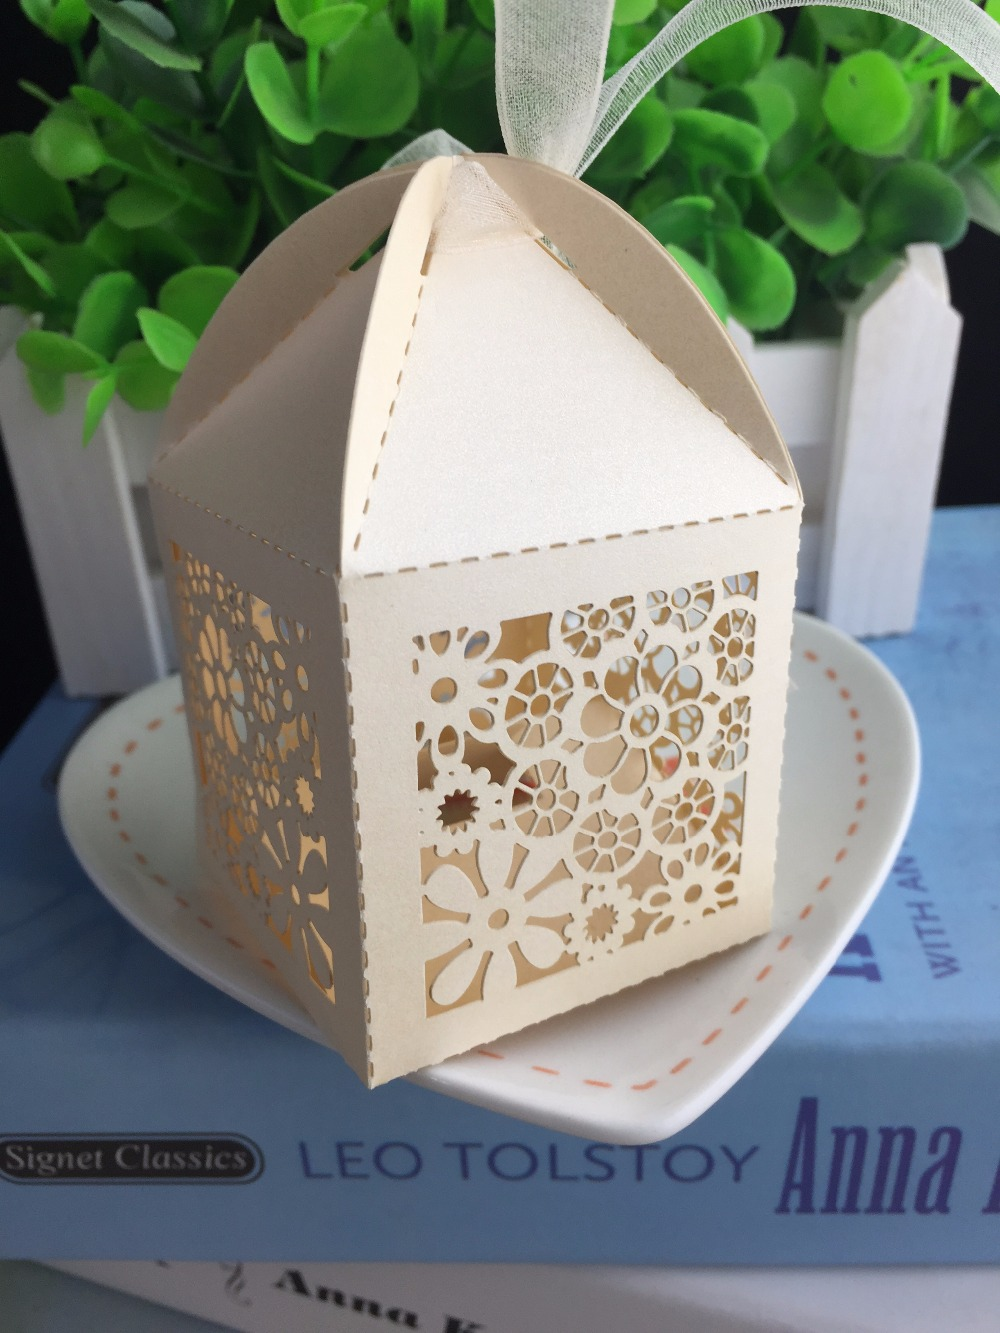 300pcs Ivory Candy Wedding Gift Packaging Box for Guests,Wedding ...